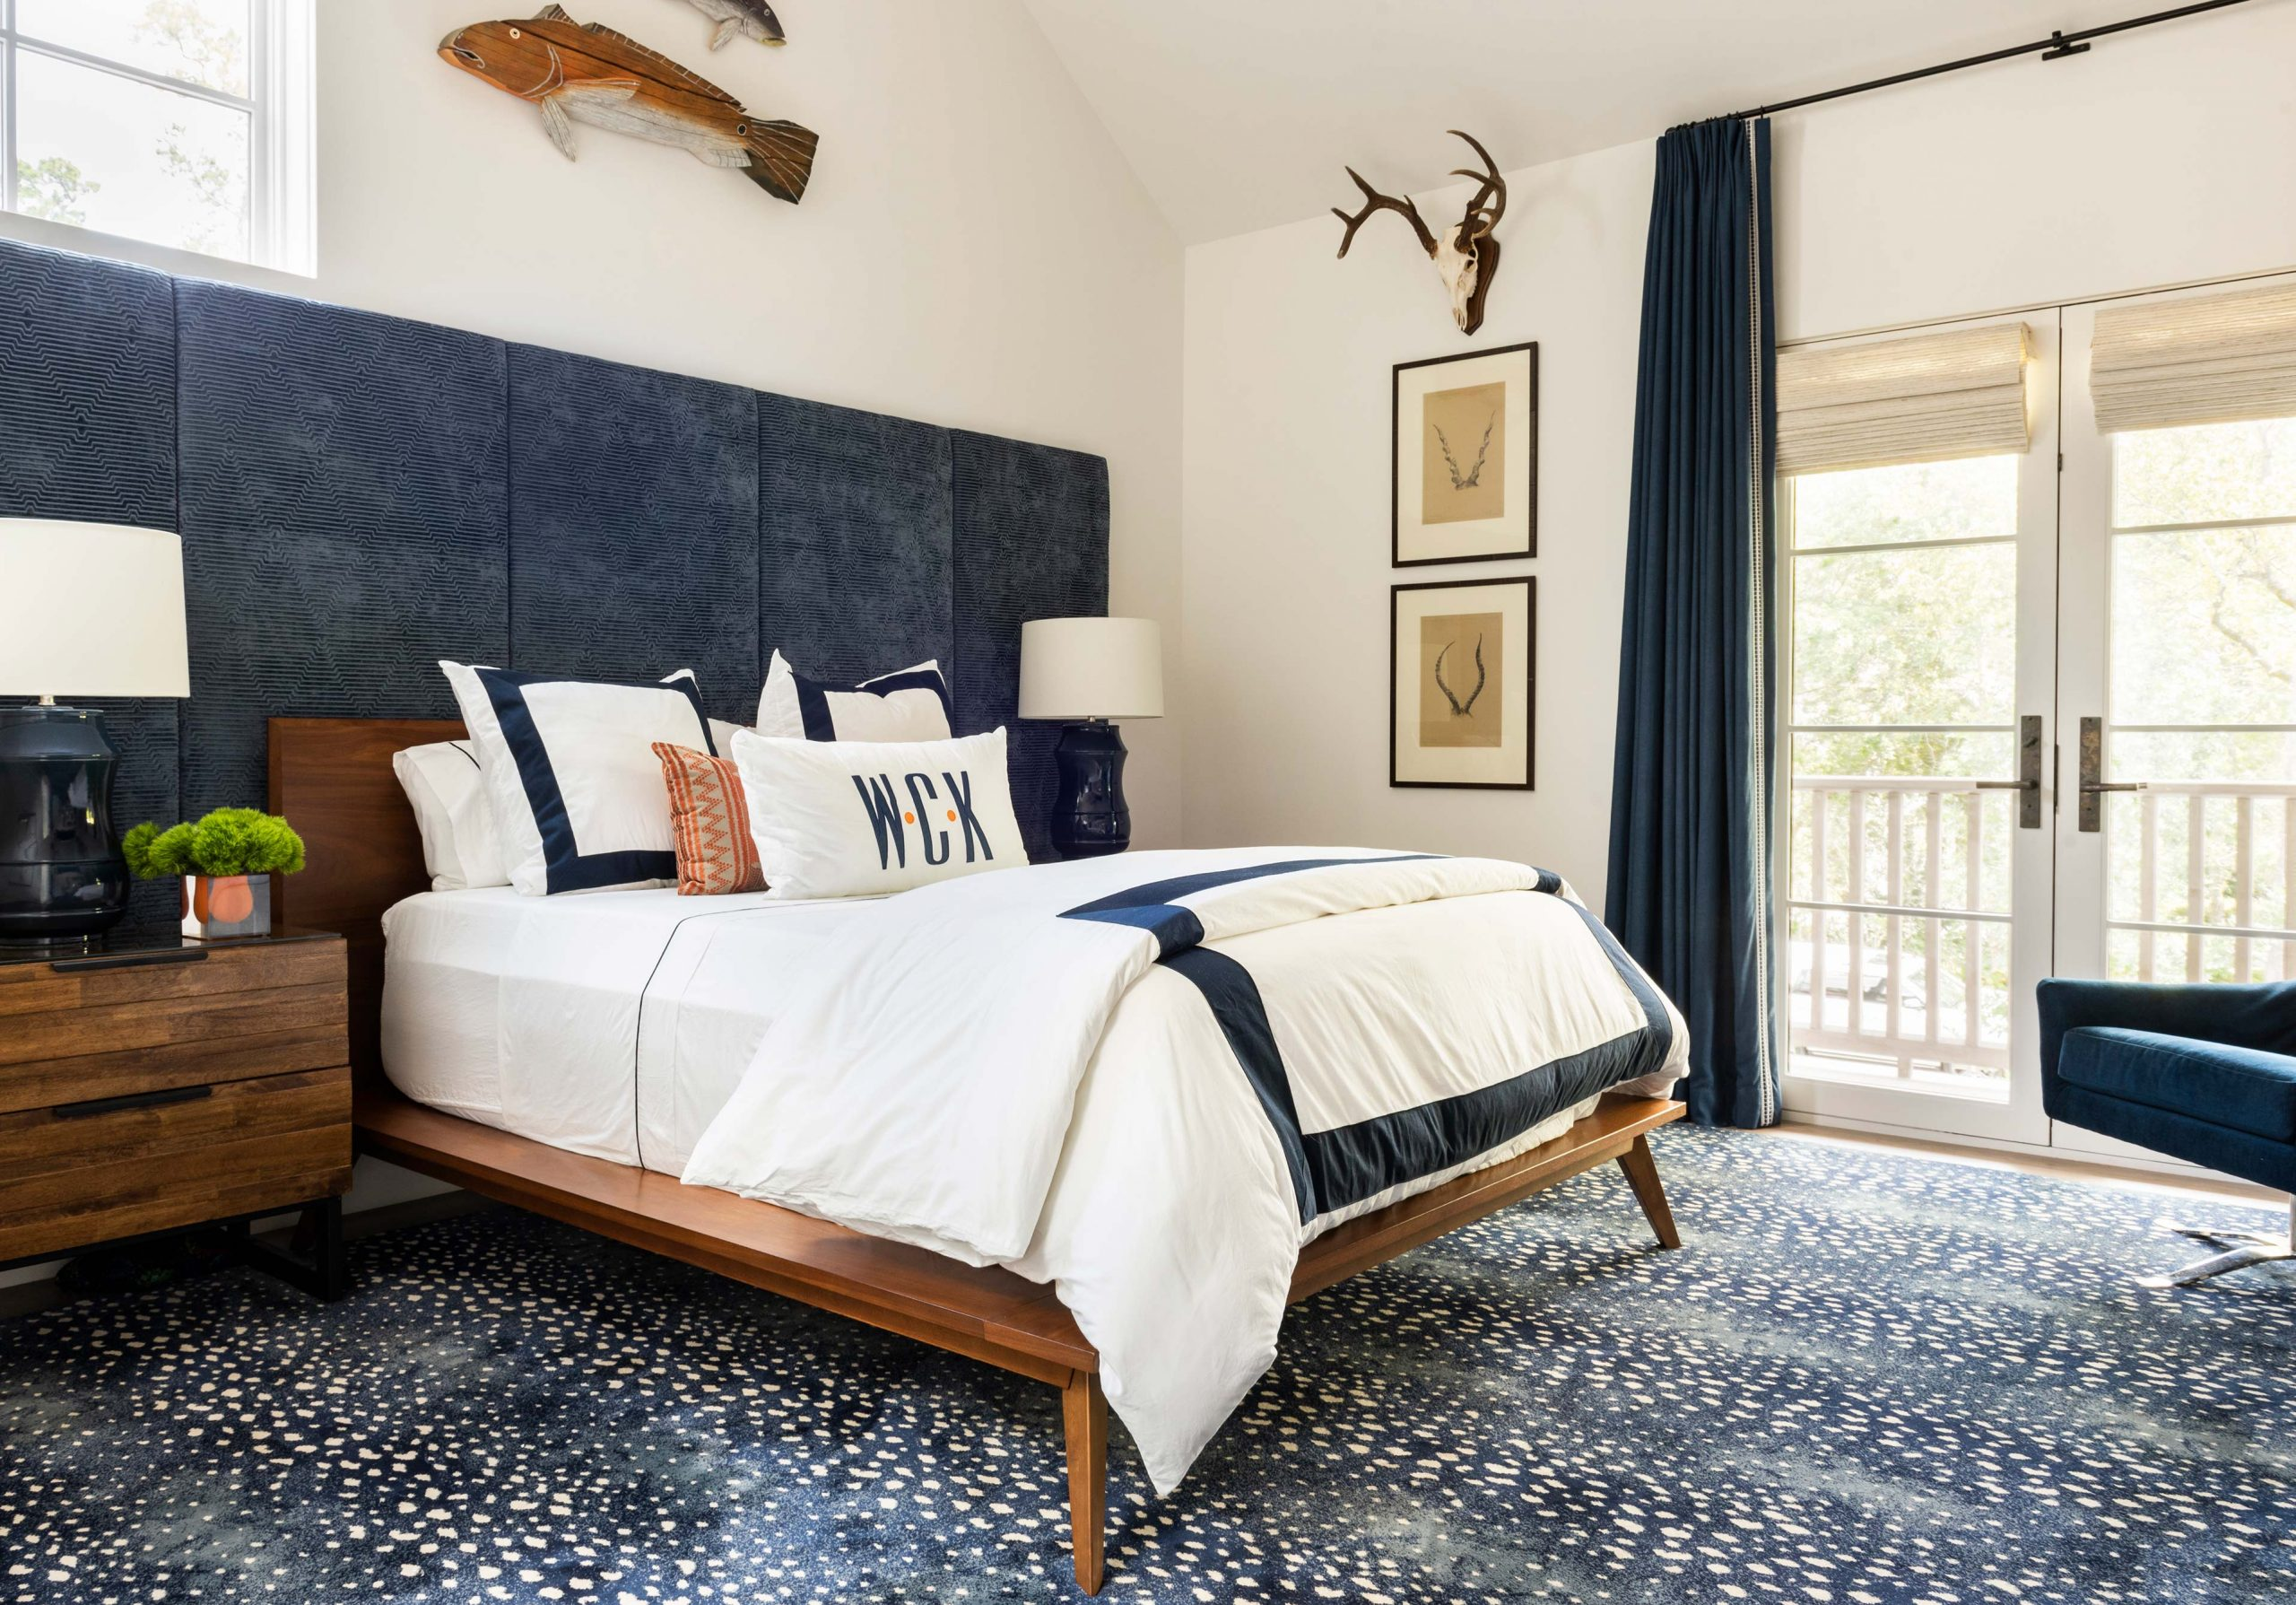 kids blue and white bedroom with hunting theme - Creative Tonic